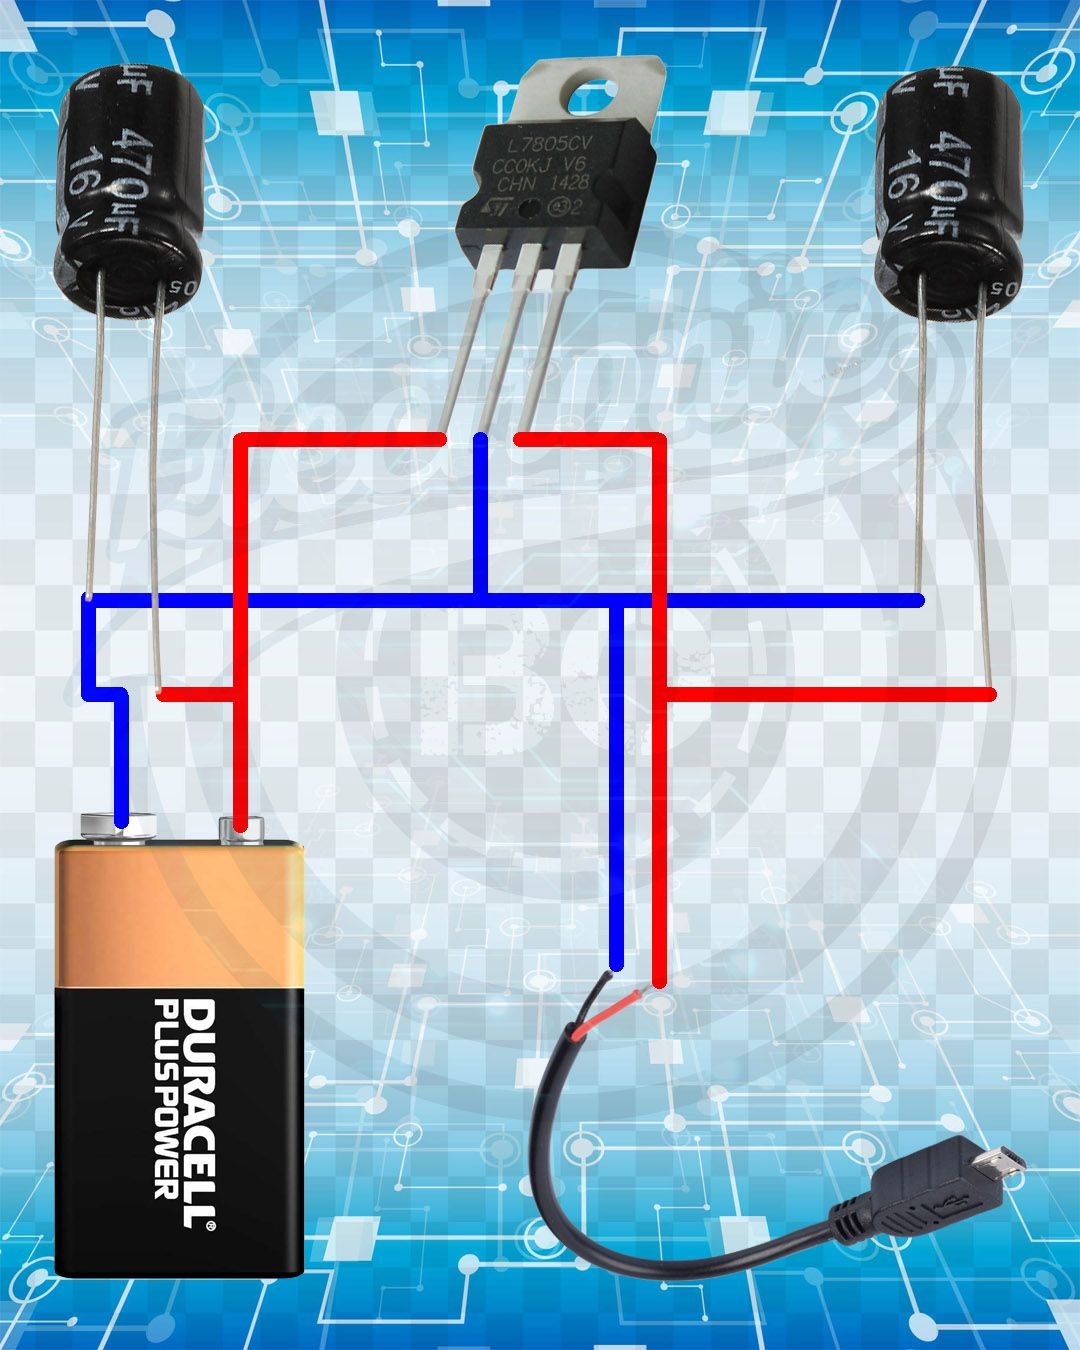 Pin by Carlos Rosario on Electronics projects Electronic